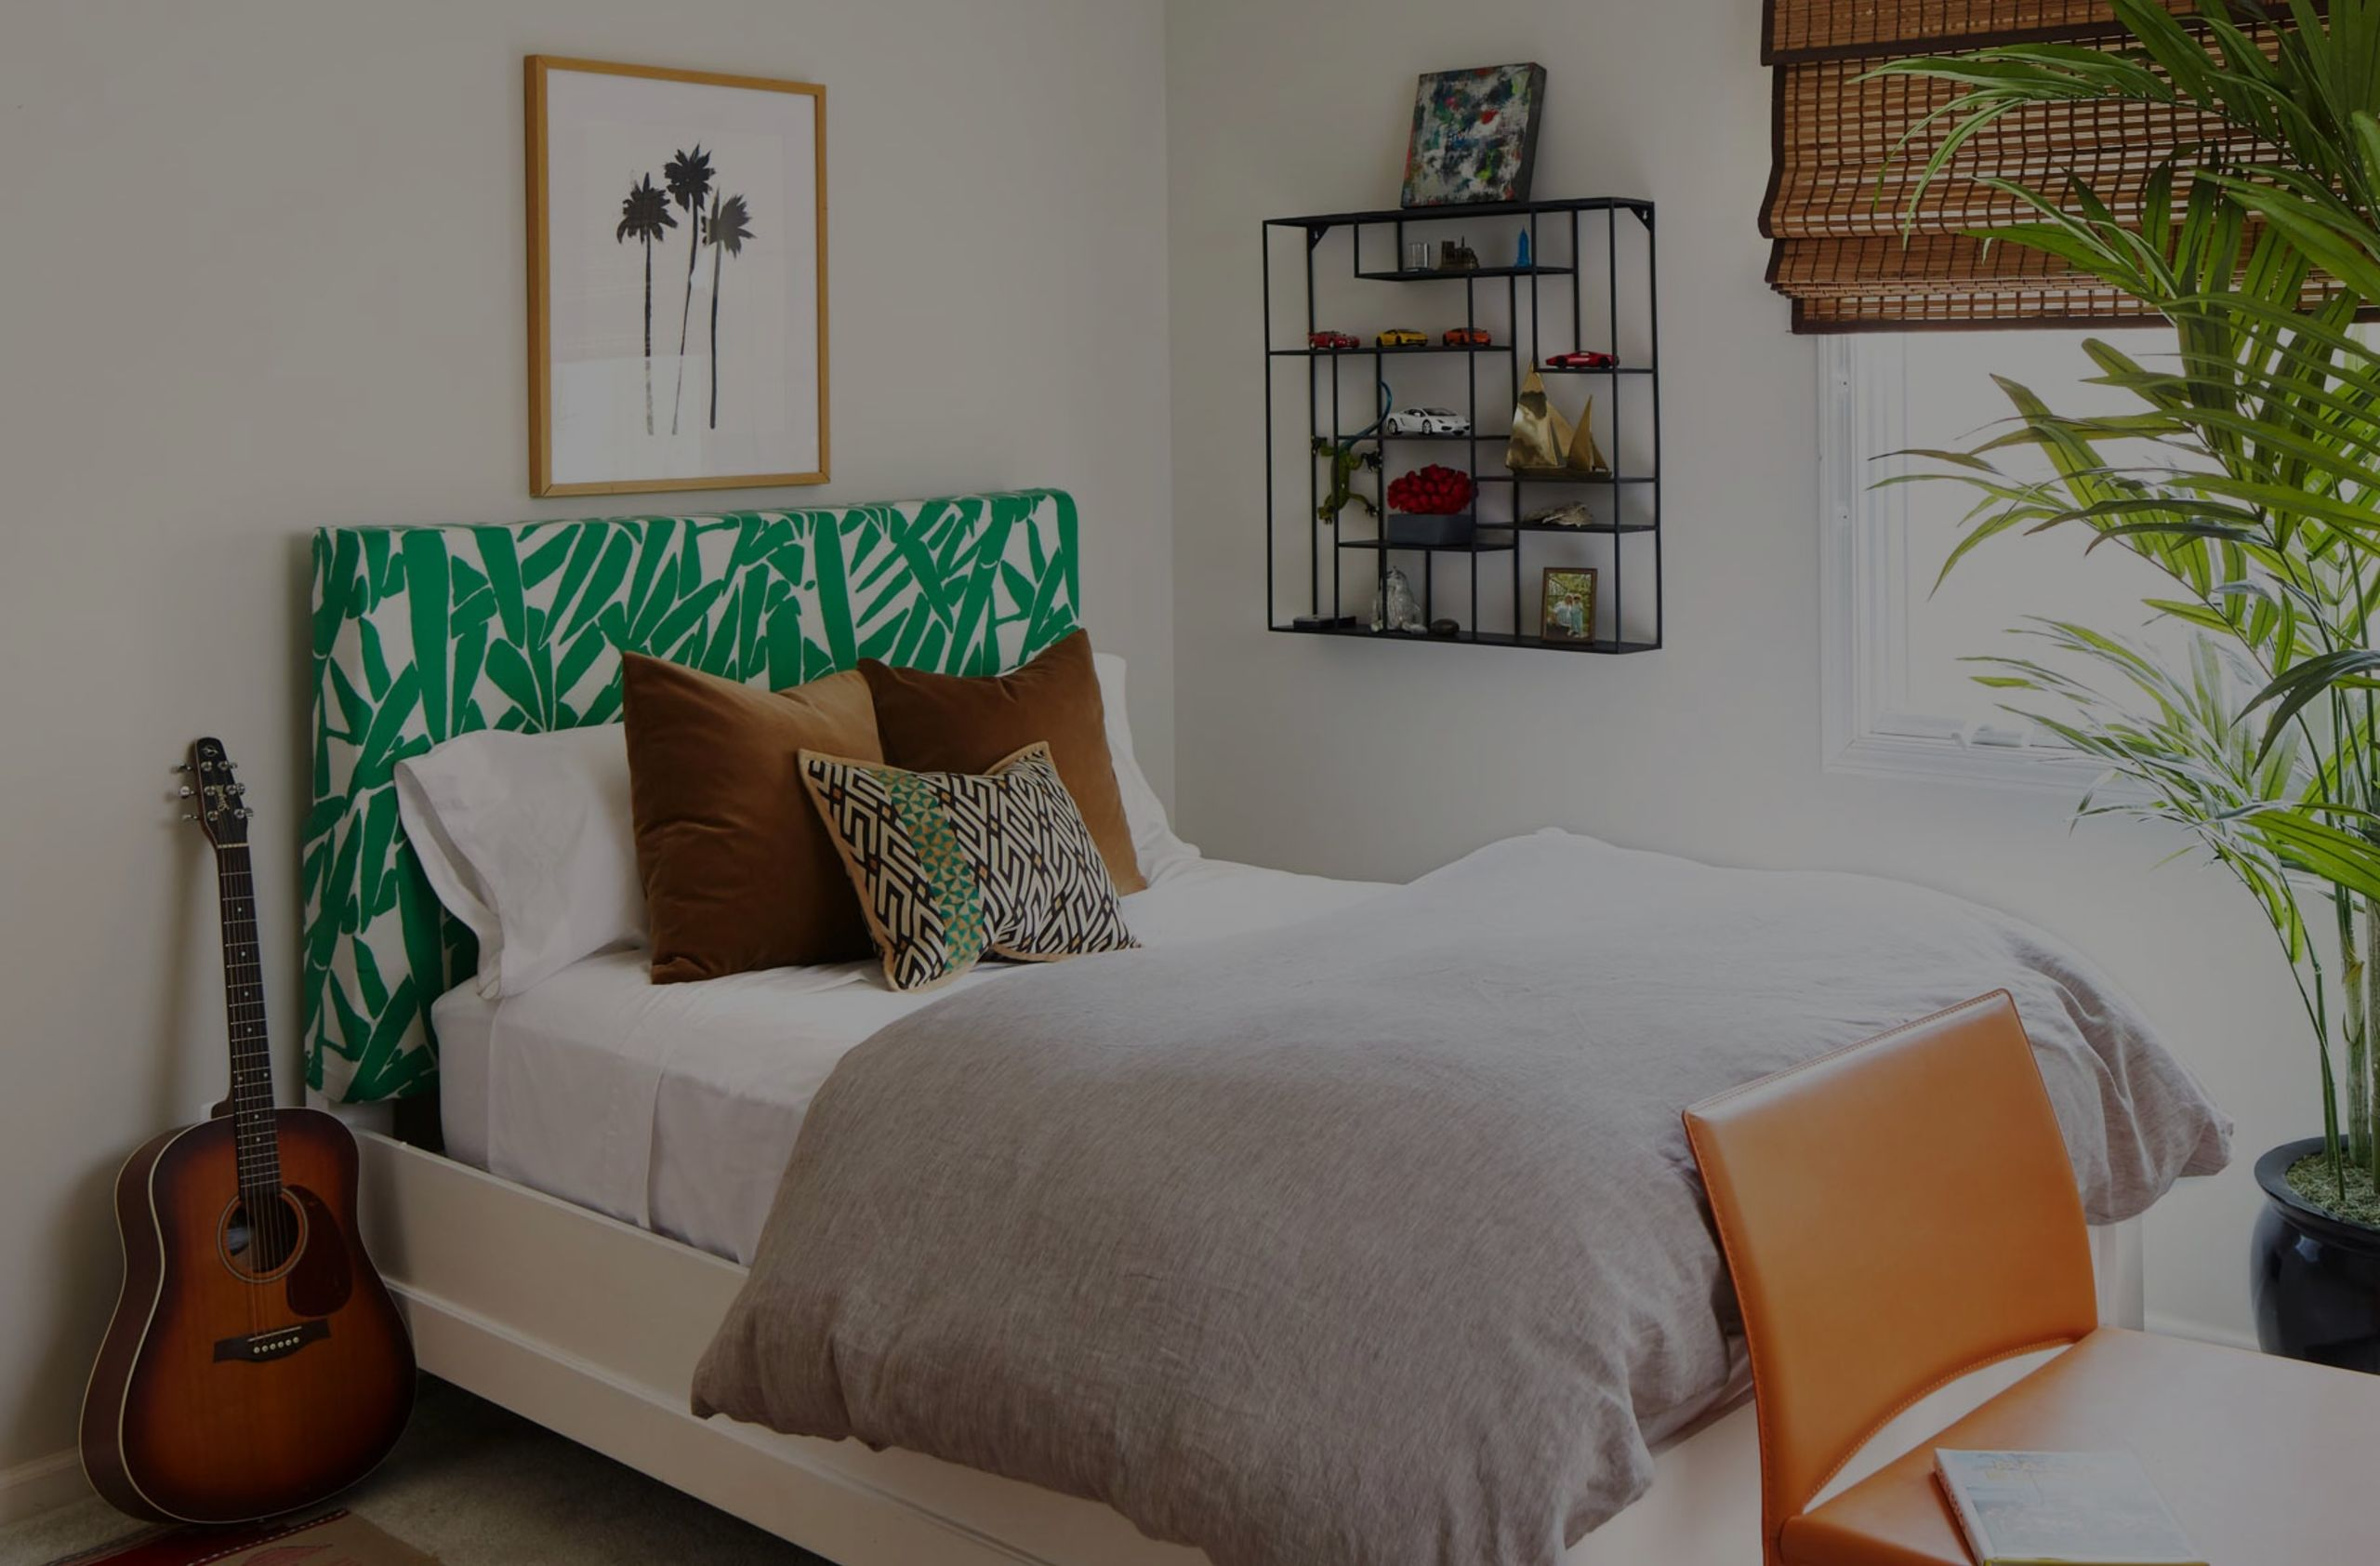 DIY Upholstered Headboards, Bold or Subtle?